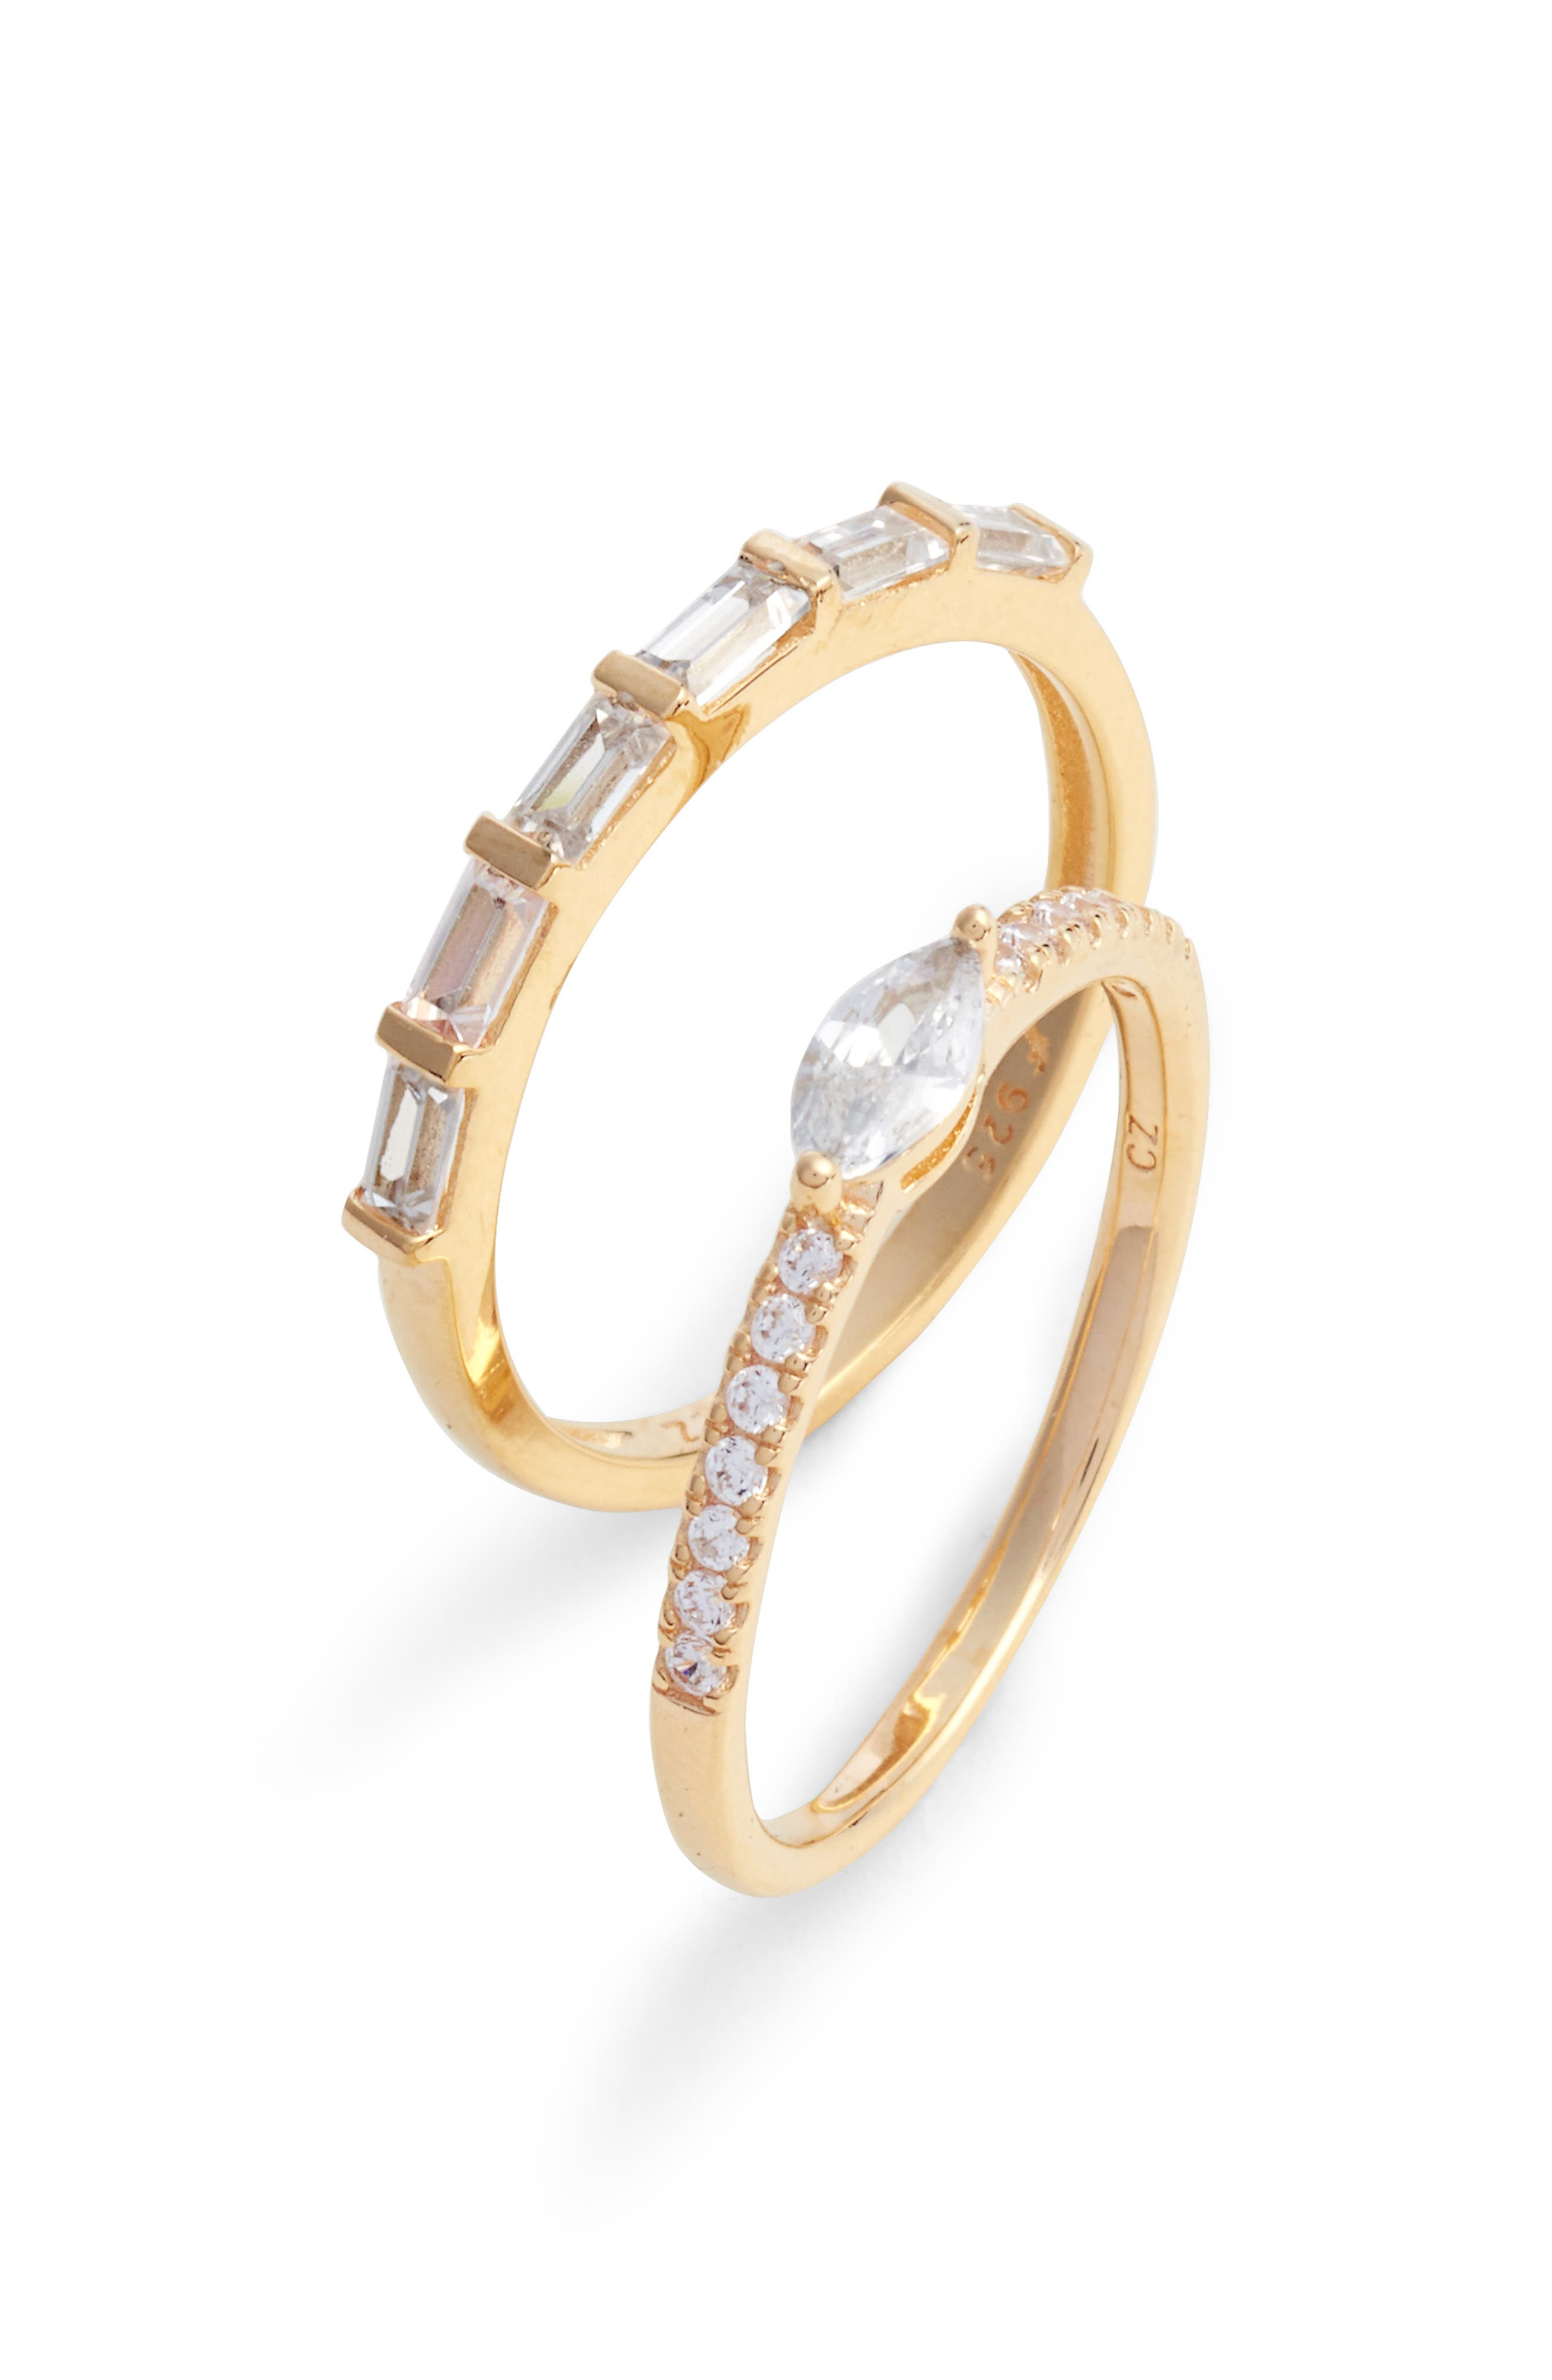 Set of 2 Cubic Zirconia Stacking Rings,                         Main,                         color, Gold